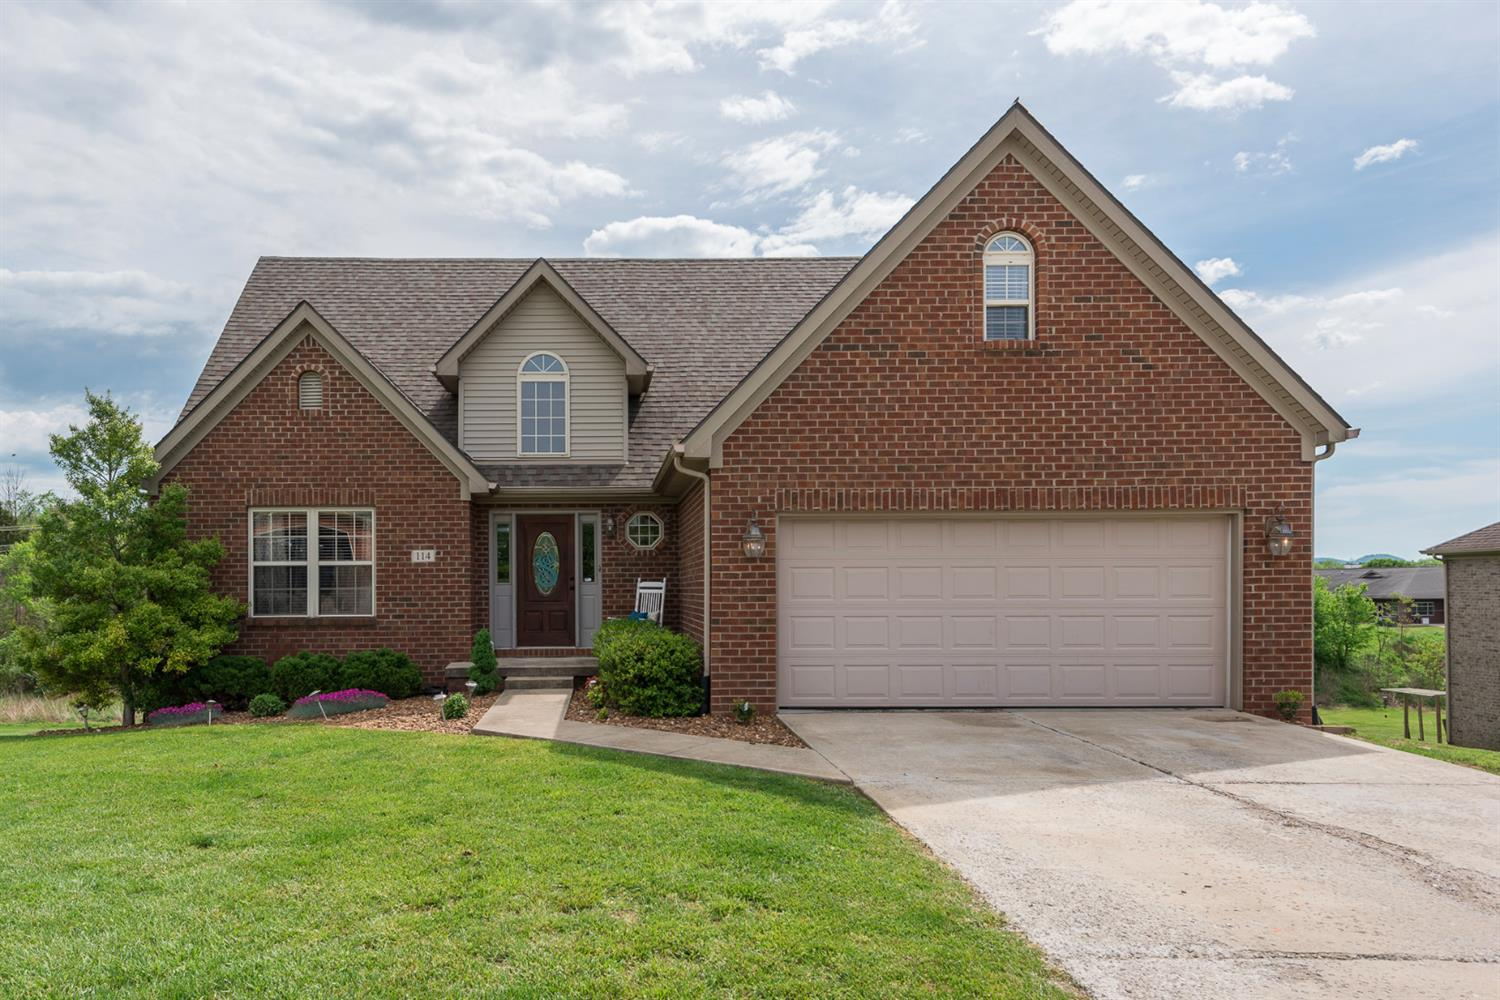 Home For Sale at 114 Legacy Dr, Berea, KY 40403